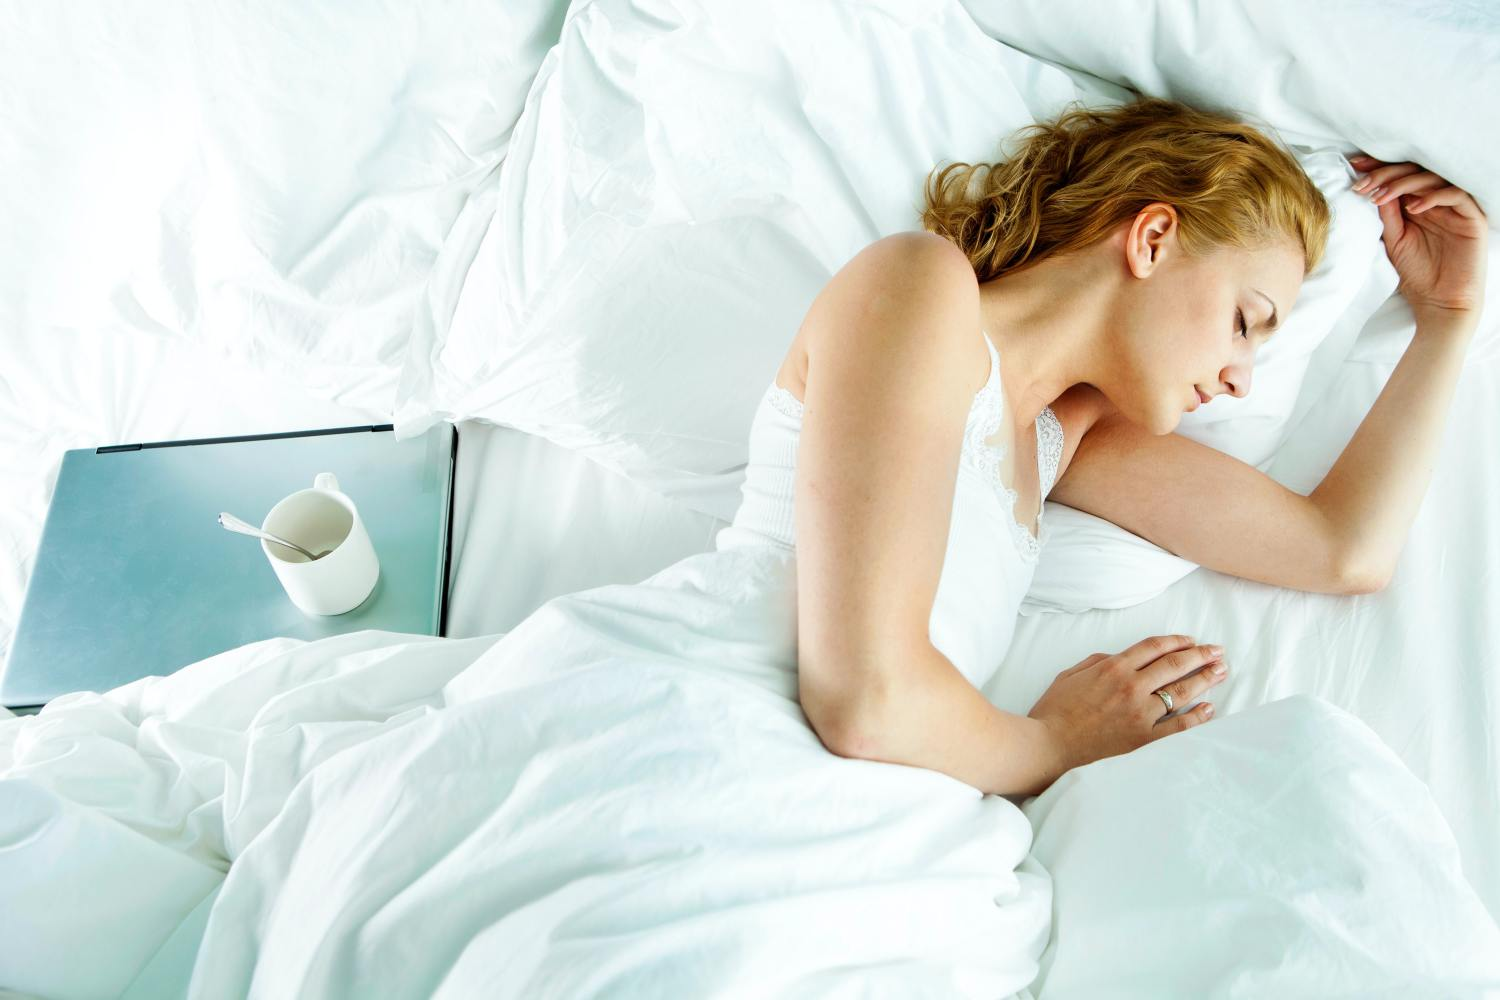 sleeping tremors: types, causes, and remedies